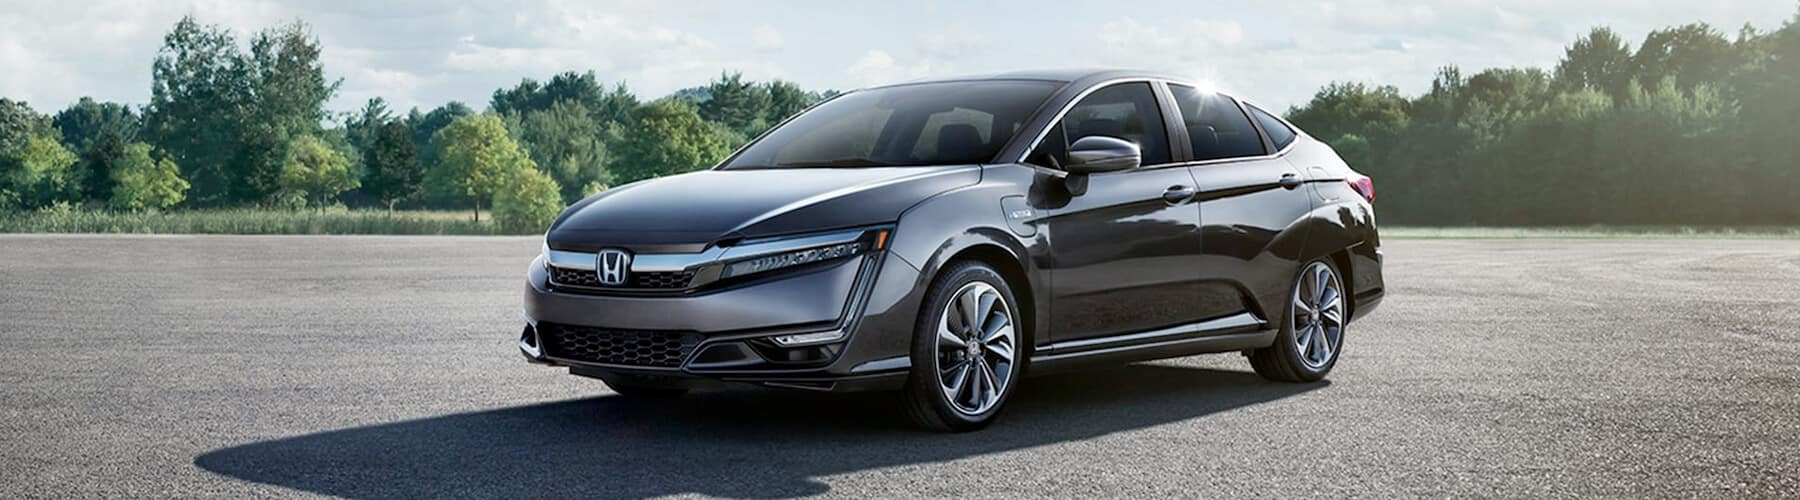 2020 Honda Clarity Plug-In Hybrid Slider